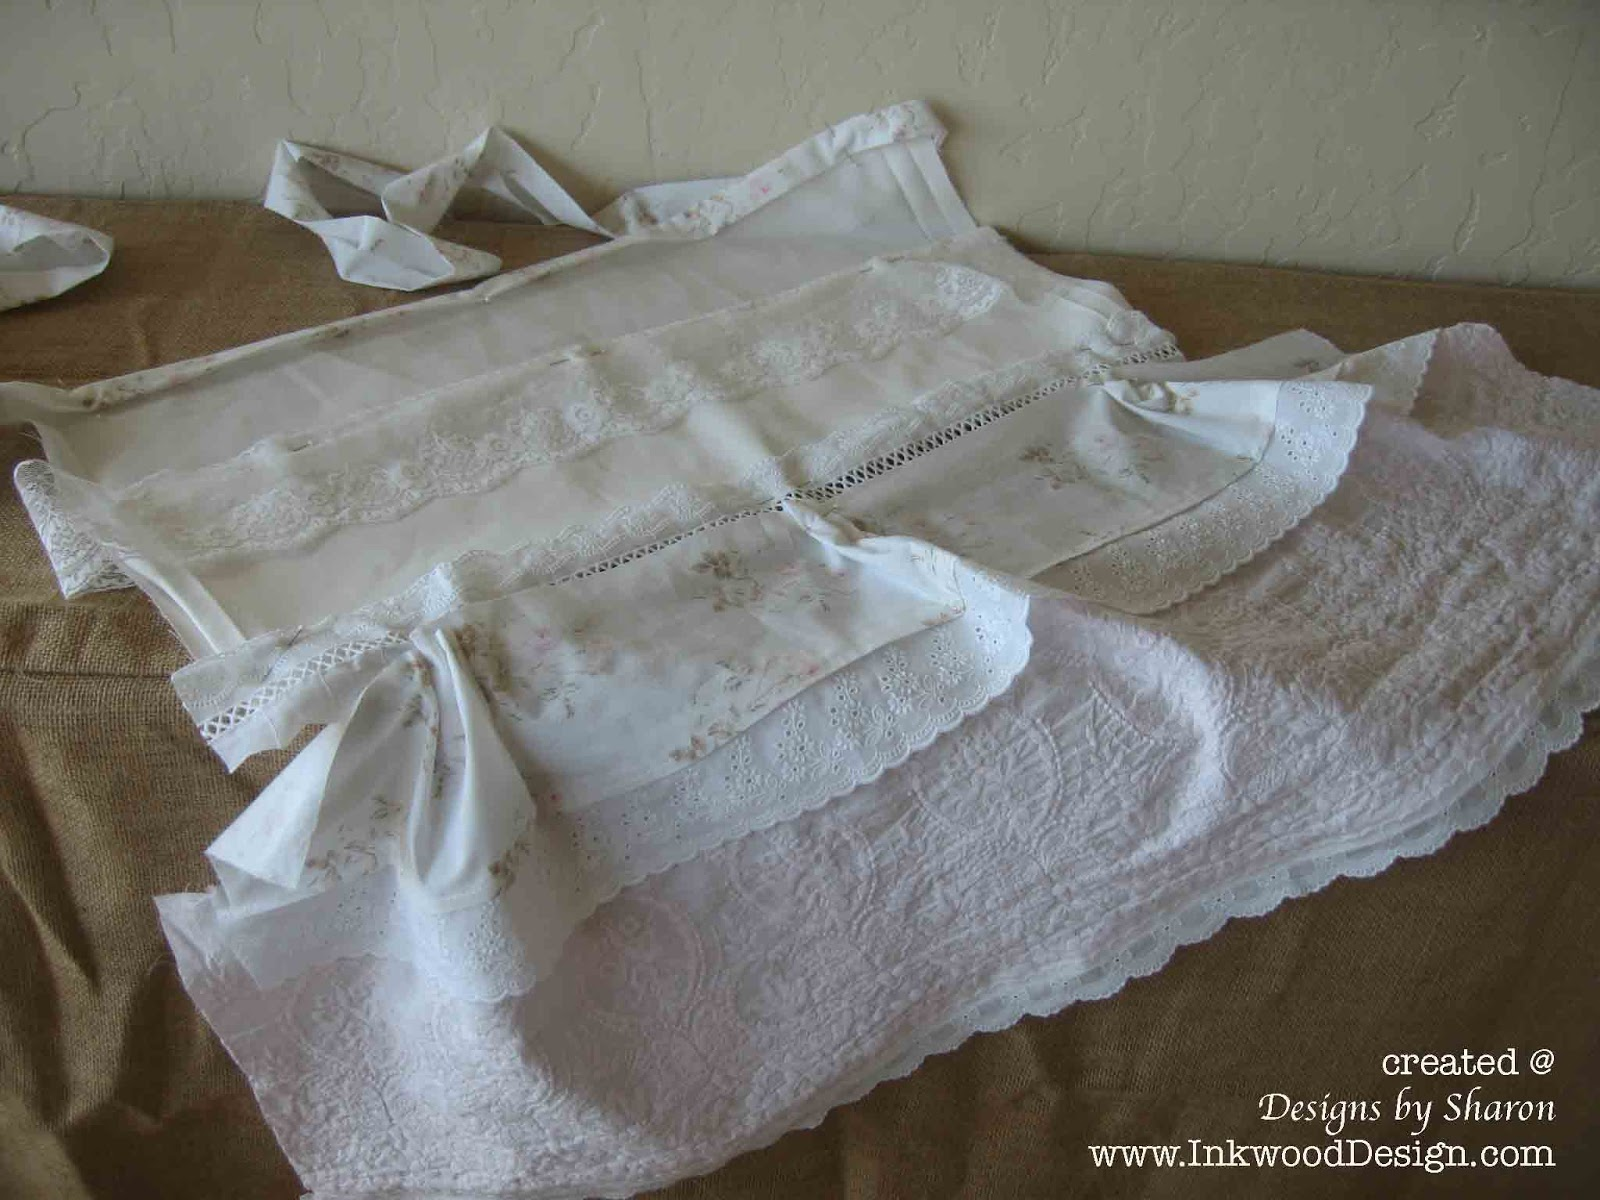 White apron lace trim - So I Will Start At The Bottom Of The Apron And Work My Way To The Top I Machine Stitched This Beautiful White Cotton Trim With Bows And Scallops Onto A